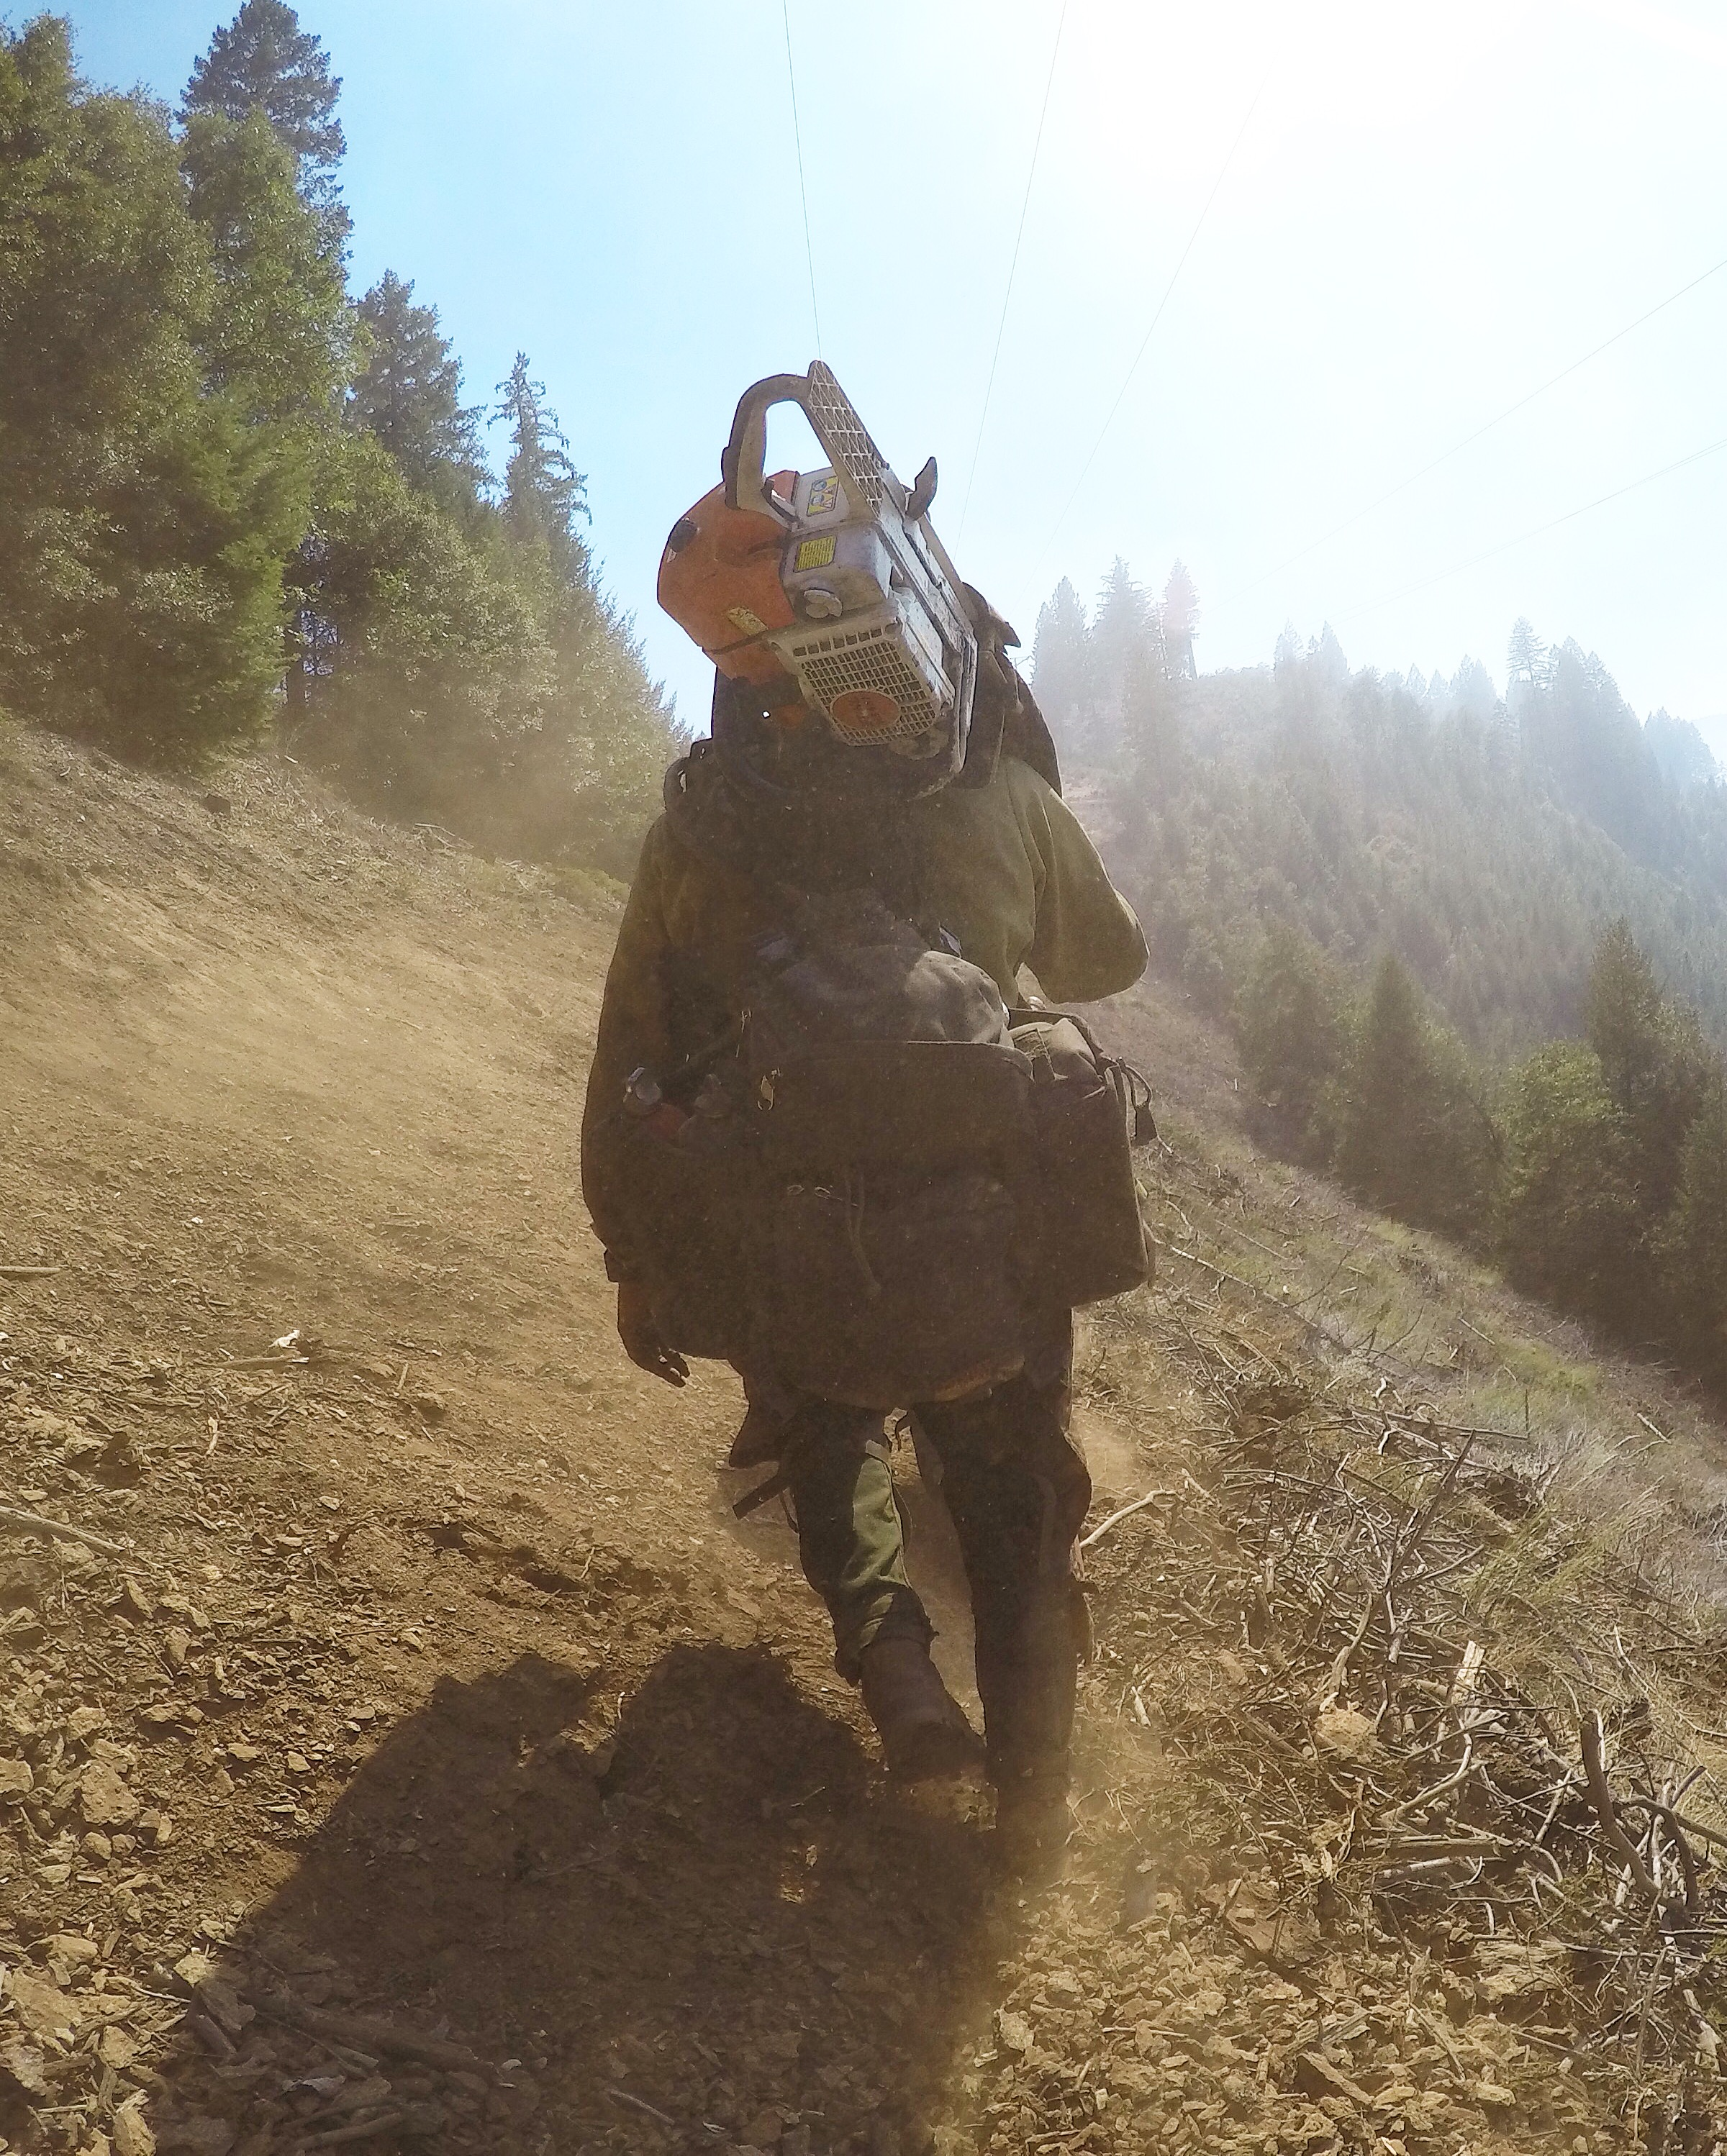 Wildland firefighter carrying chainsaw from taken by ExpertVoice Expert Gregg Boydston